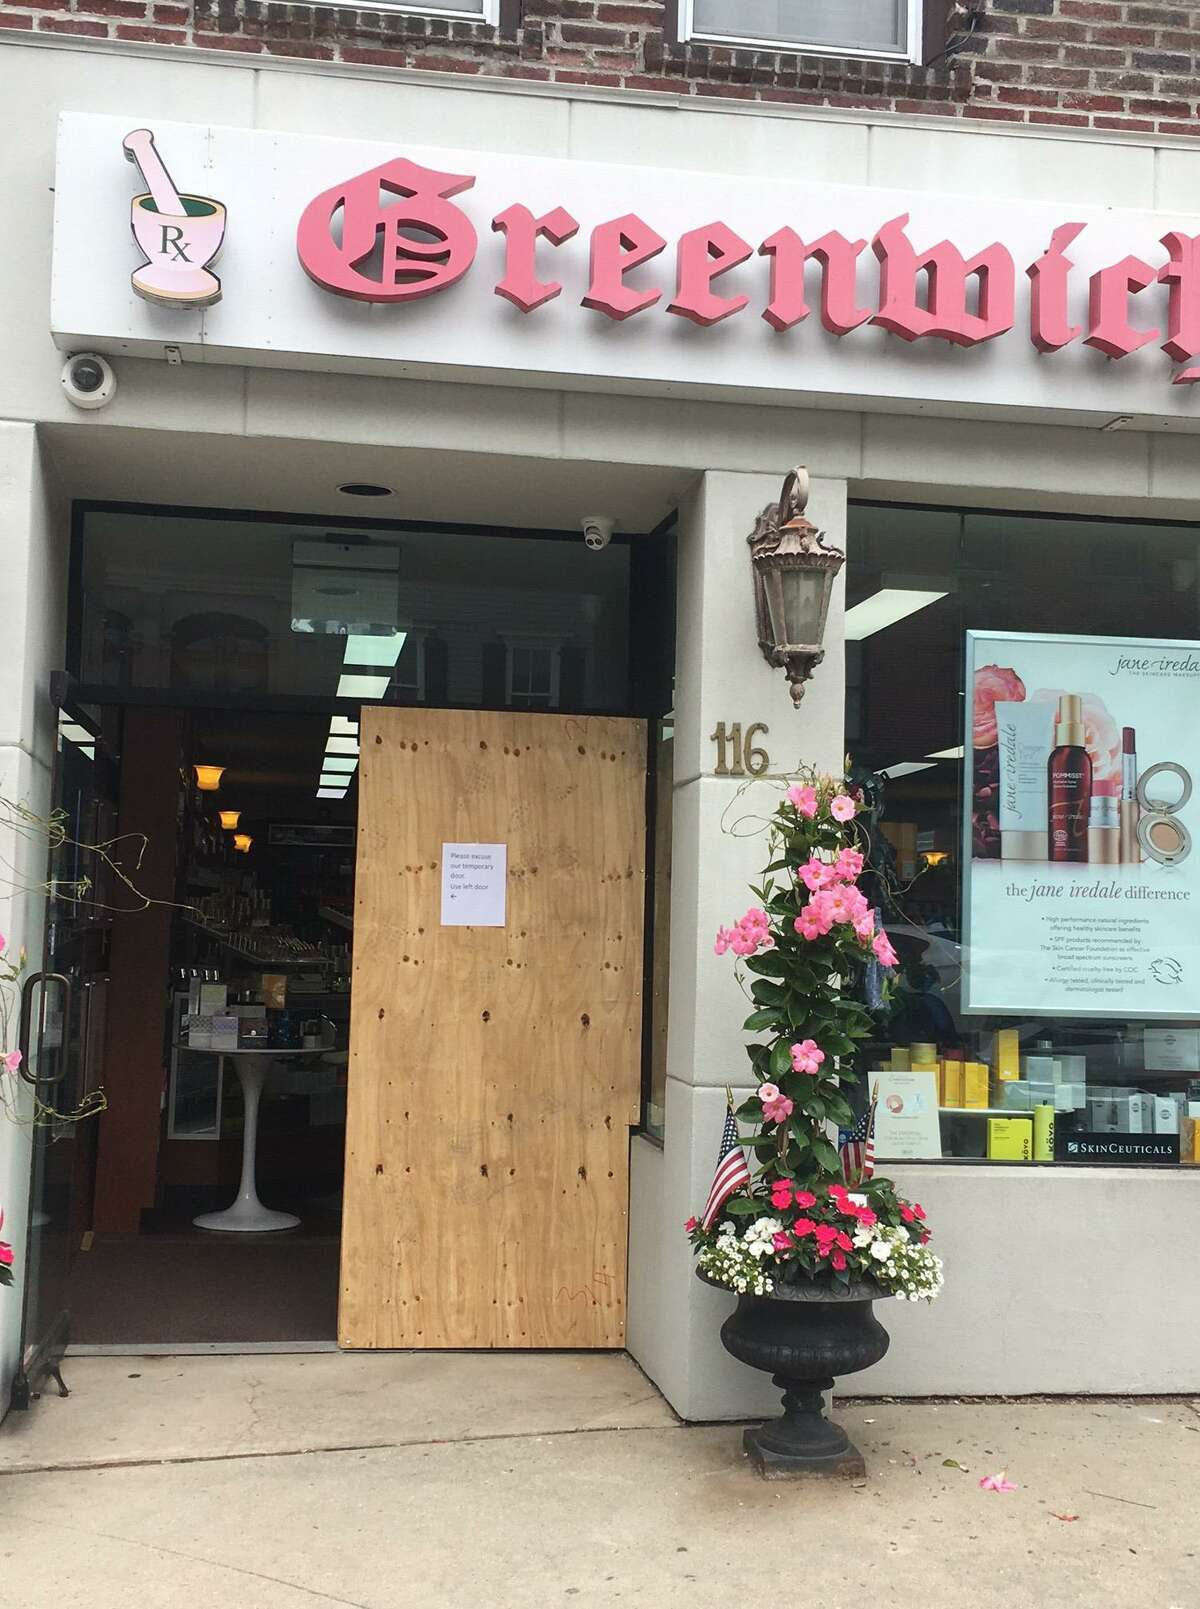 Plywood covered the damage left by intruders at two Greenwich Avenue pharmacies over the weekend.